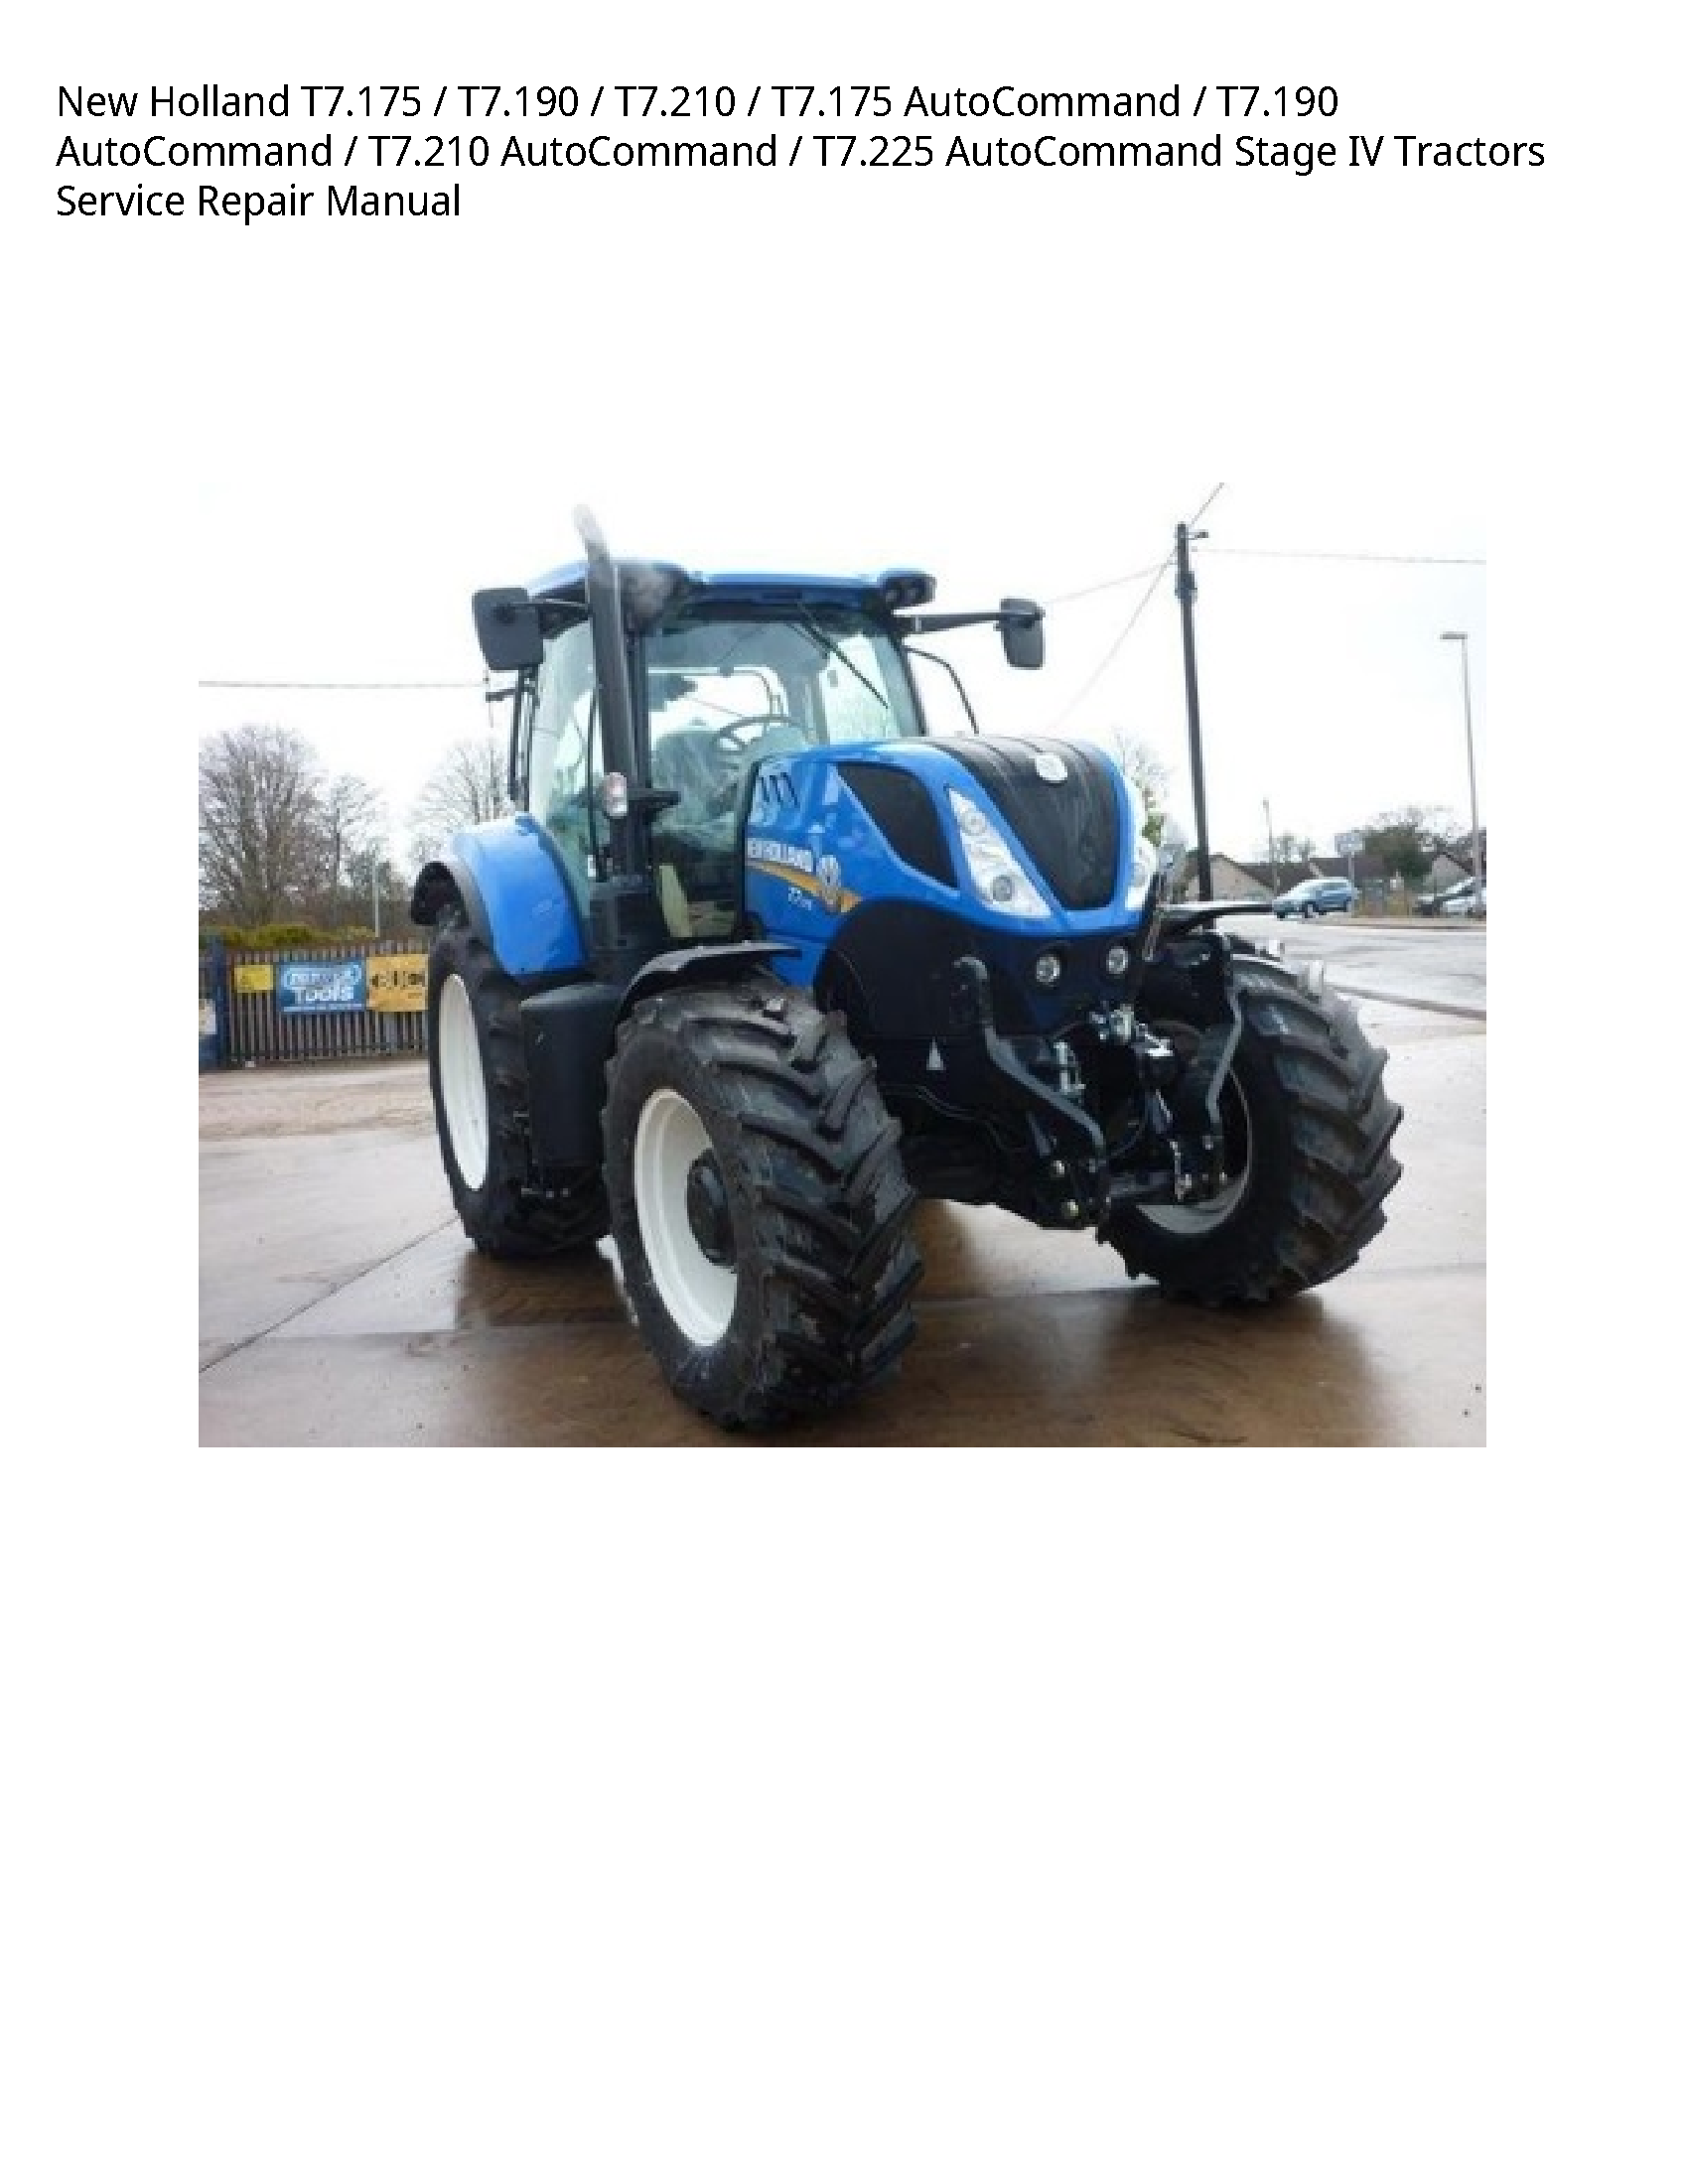 New Holland T7 190 Autocommand Autocommand Autocommand Autocommand Stage Iv Tractors Manual In 2020 Tractors New Holland Holland